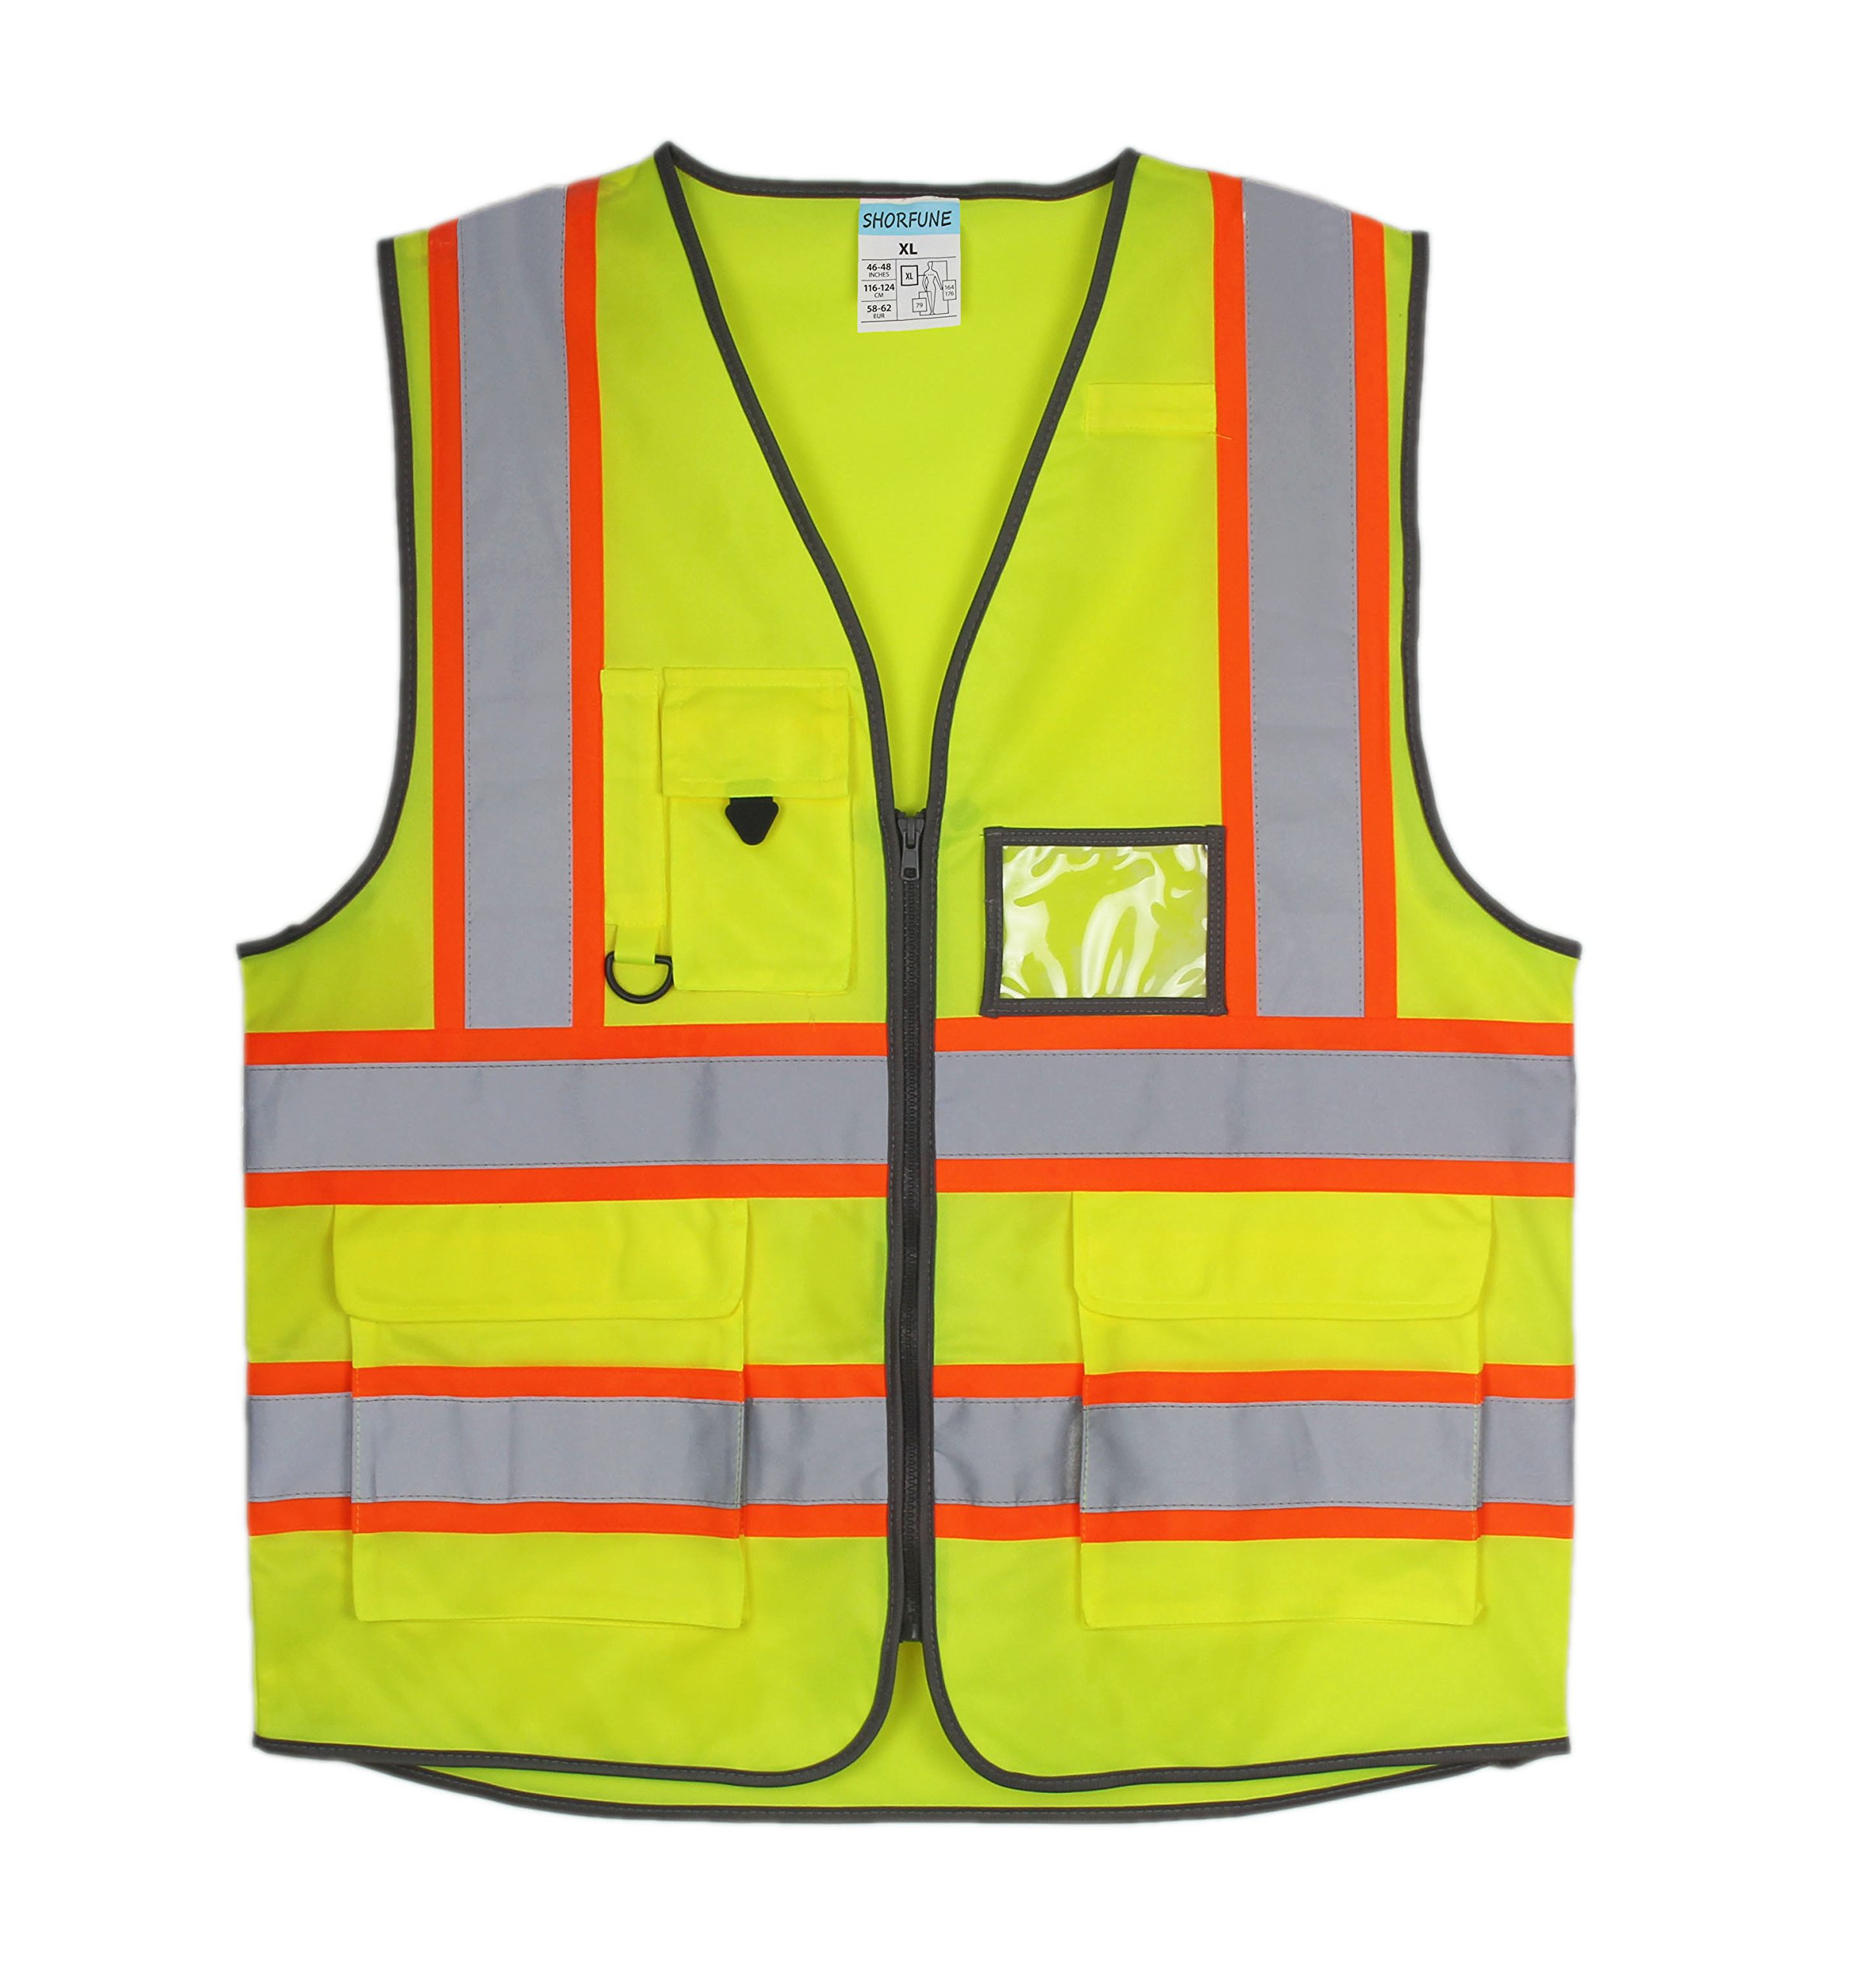 SHORFUNE 1119U High Visibility Reflective Safety Vest with Pockets and Zipper, Double Horizontal Reflective Strips, ANSI/ISEA Standard, Neon Yellow, XL